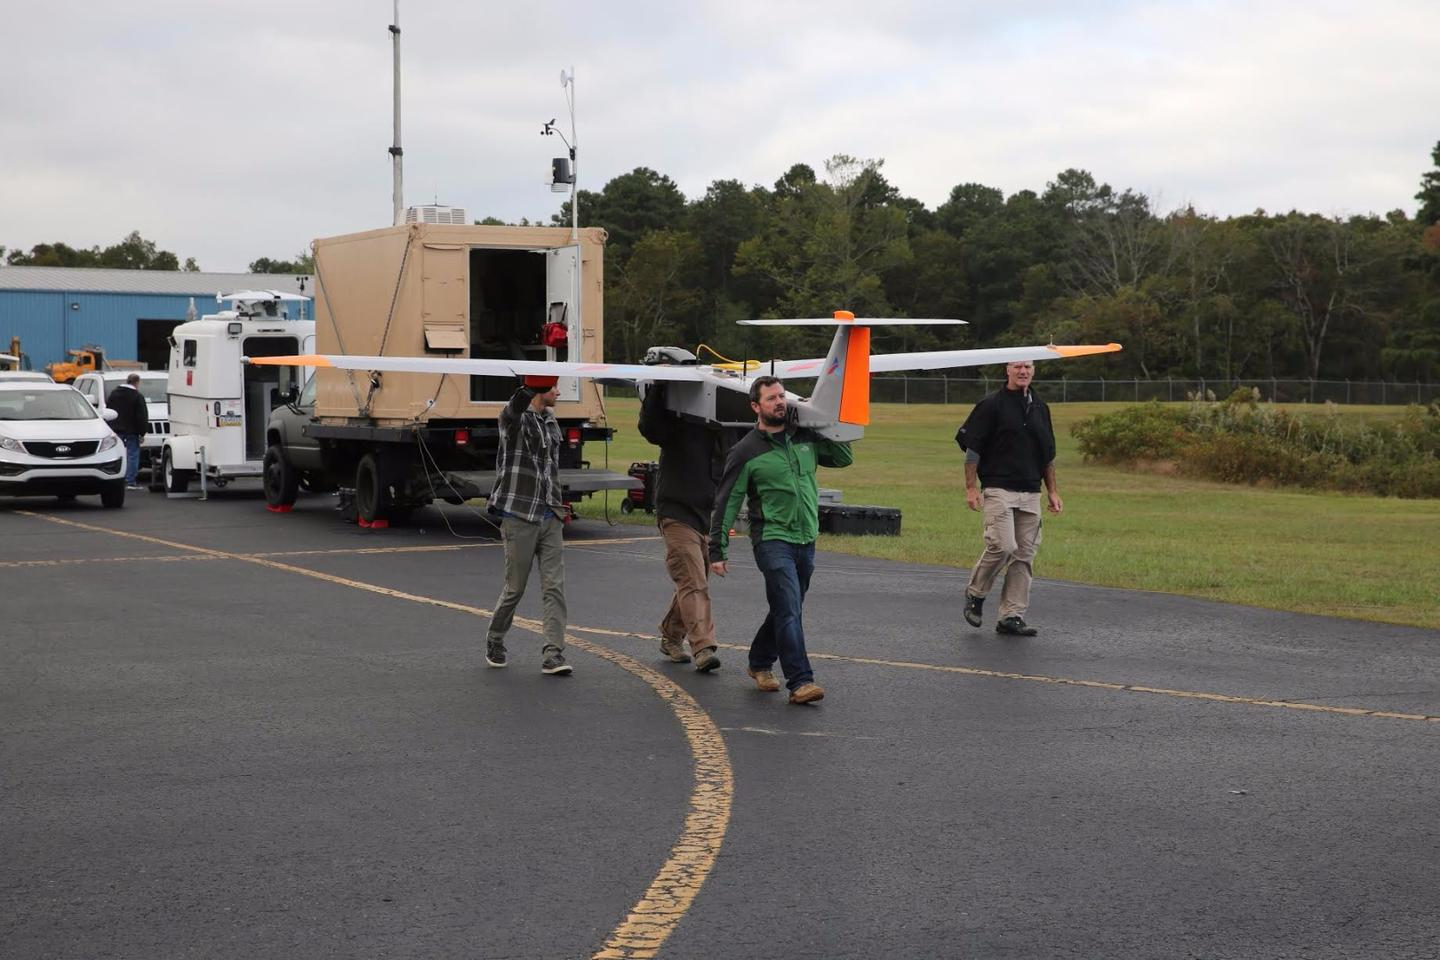 Verizon recently teamed up with company American Aerospace Technologies to see how using drones as gliding cell towers could have an impact in disaster relief scenarios